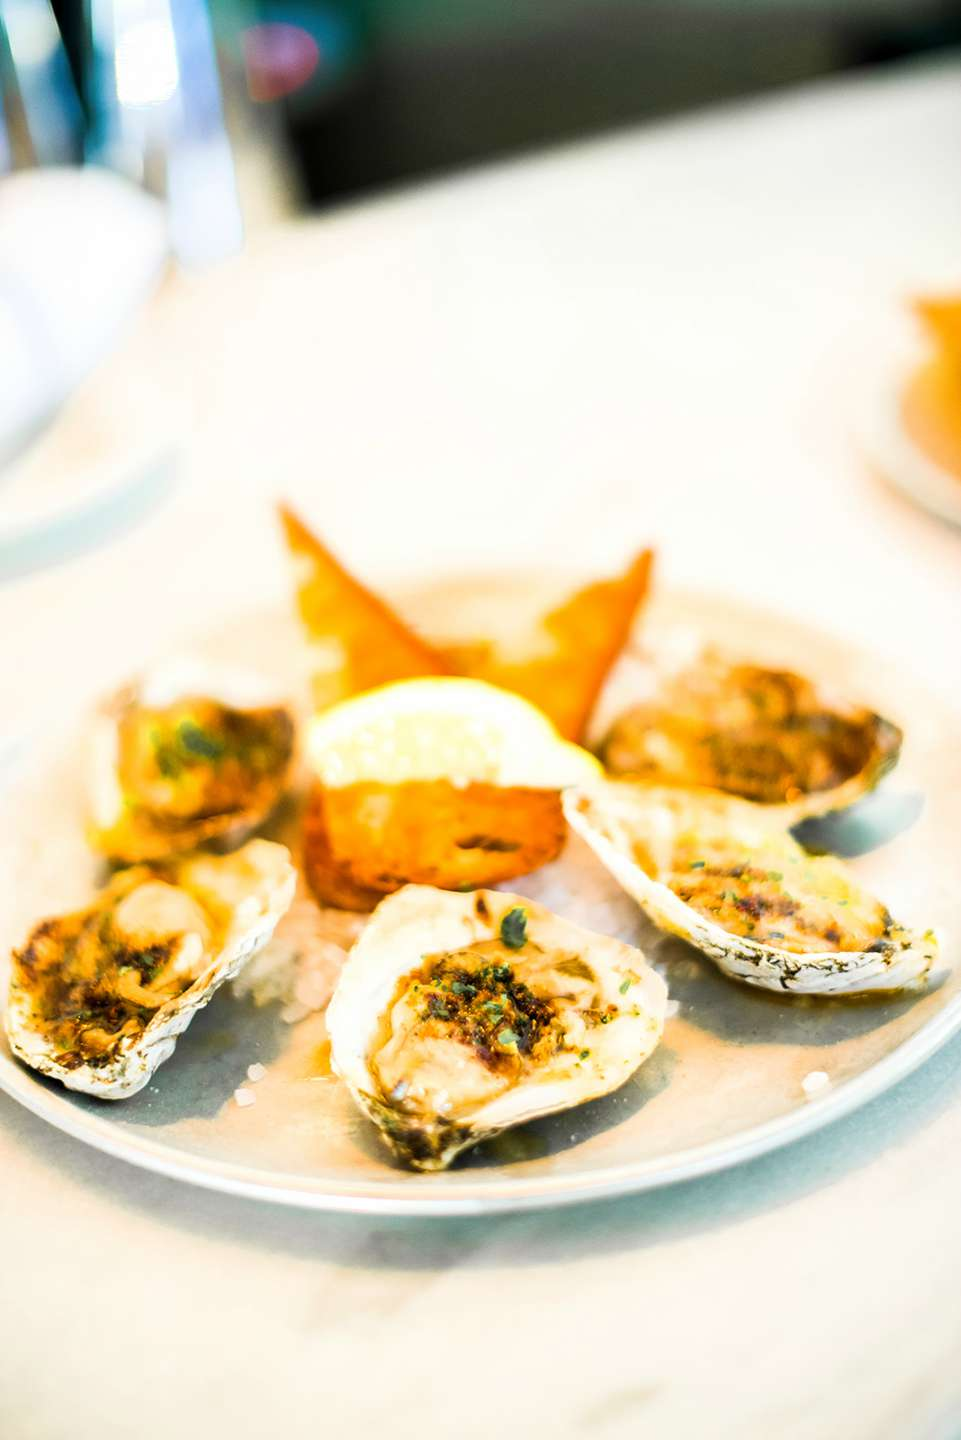 Raleigh Oyster Crawl - I'm Fixin' To - @mbg0112 | Raleigh Oyster Crawl by popular North Carolina blog, I'm Fixin' To: image of oysters on a white ceramic plate.